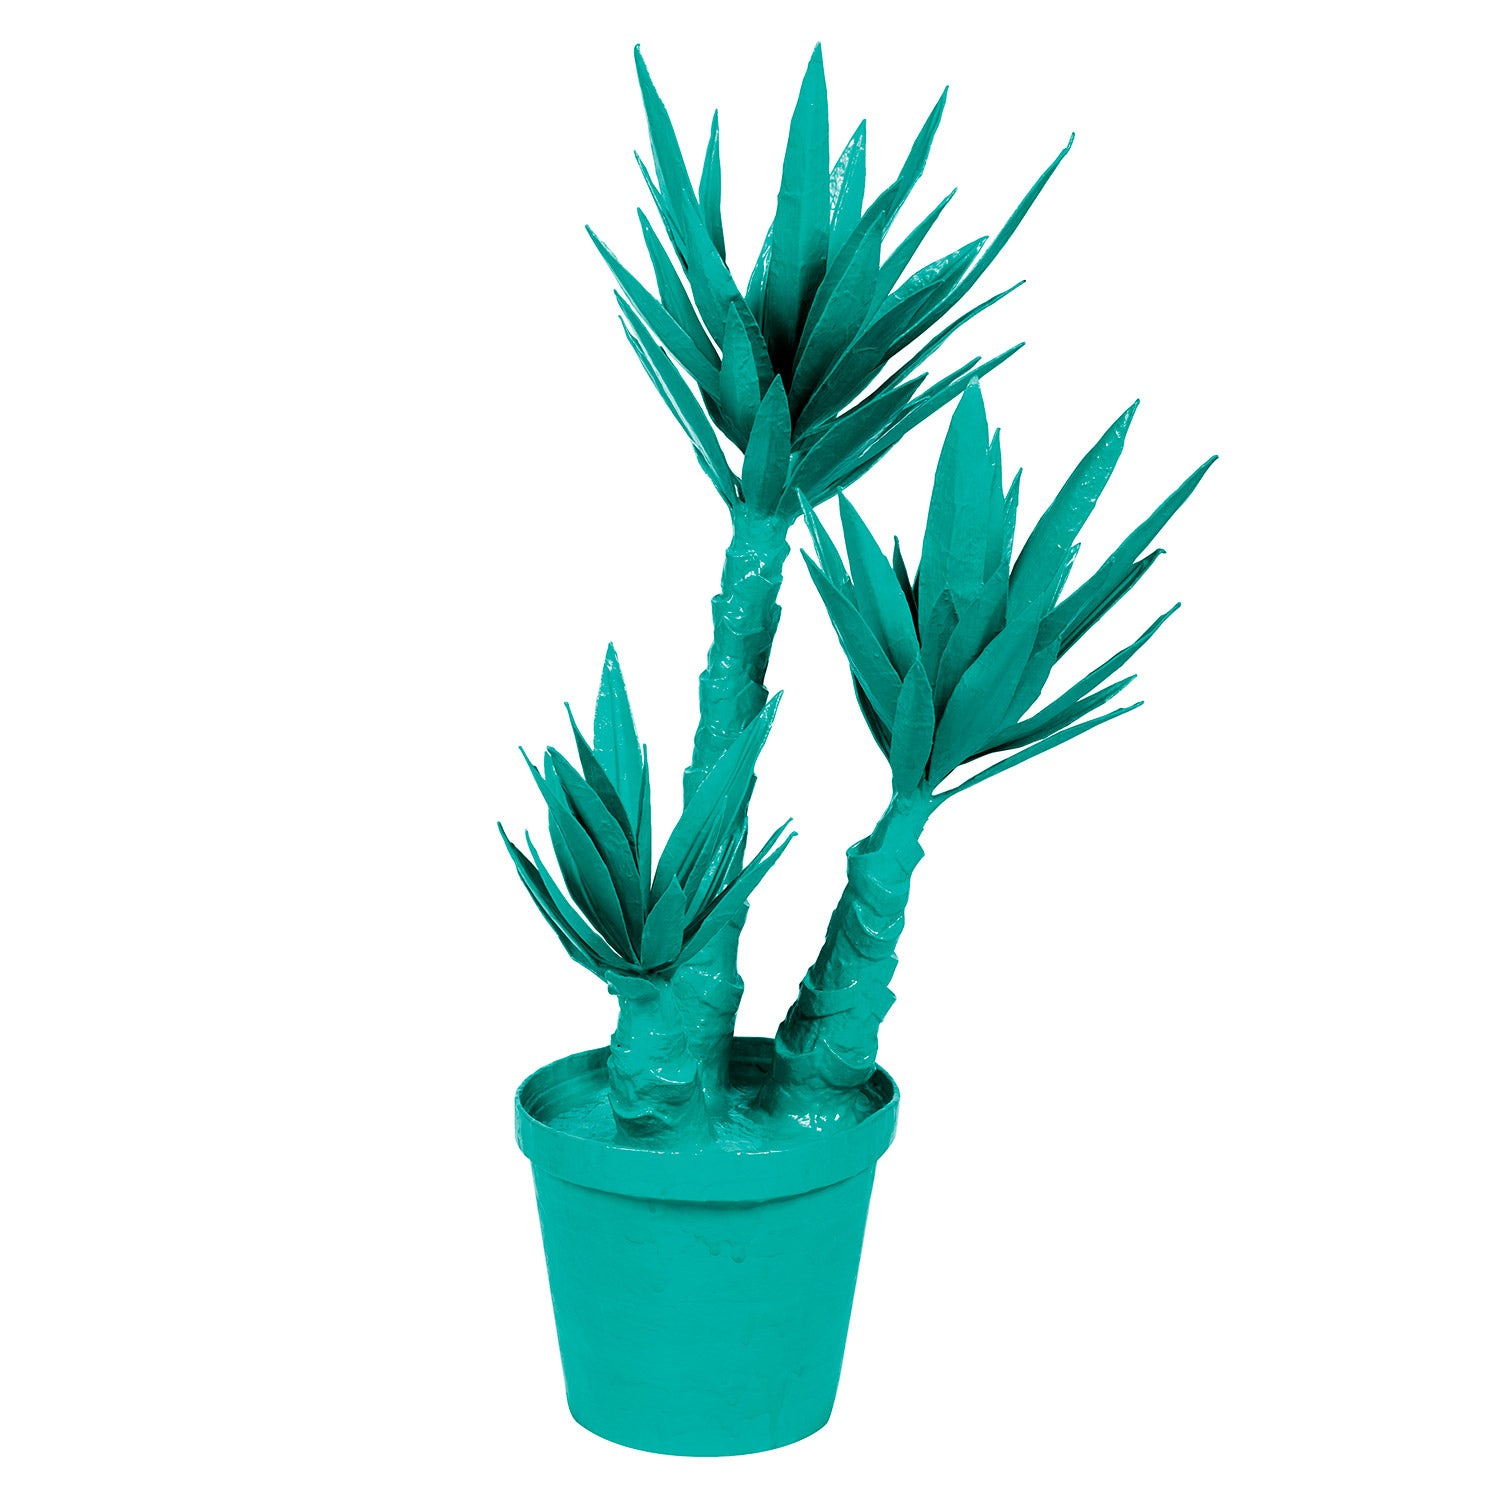 Yucca Plant made of paper mache and painted bright blue.